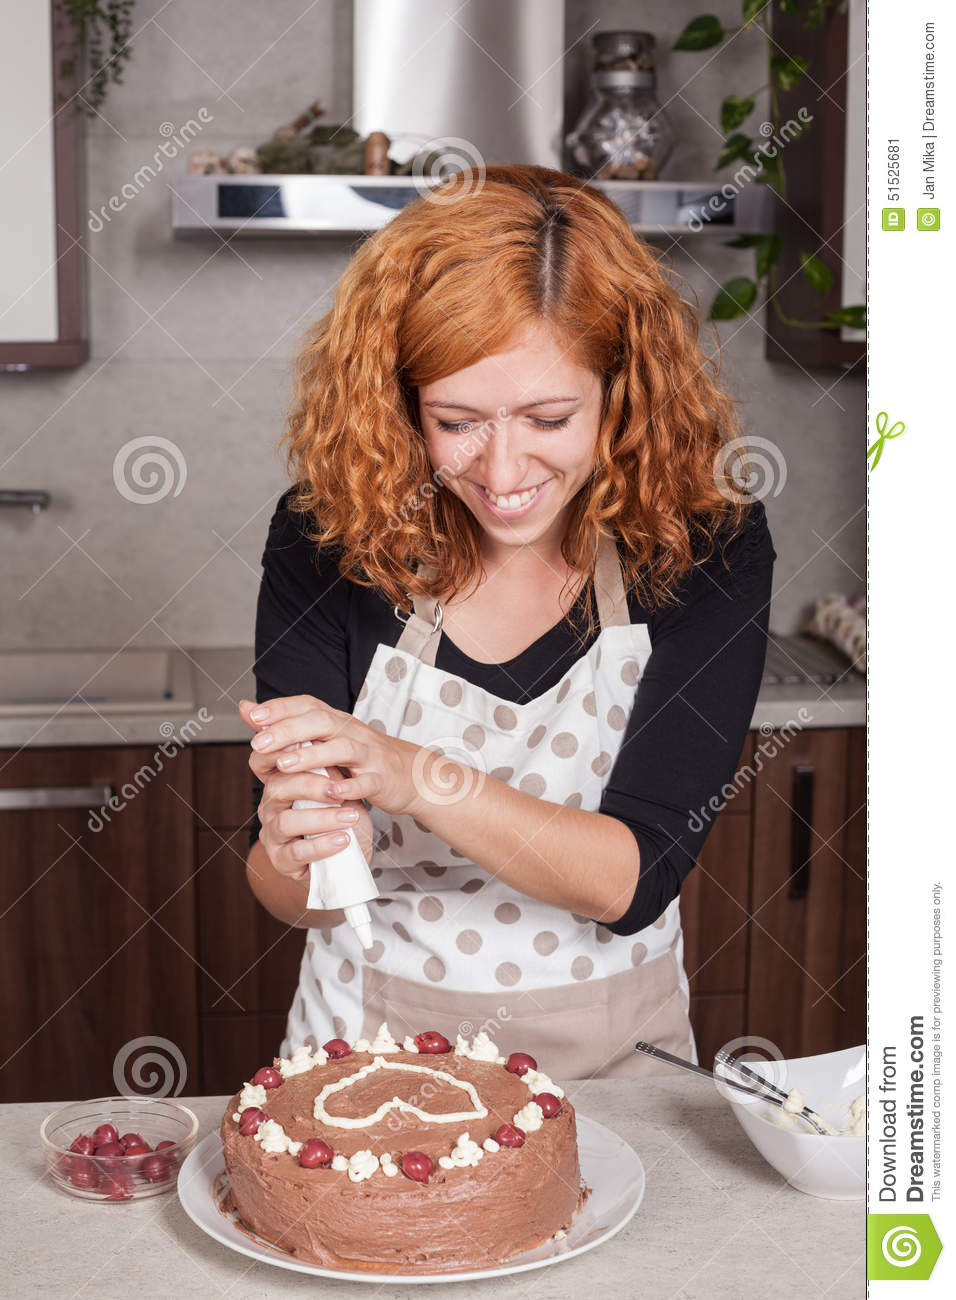 6 person kitchen table grease cleaner happy woman decorating cake at home stock photo - image ...